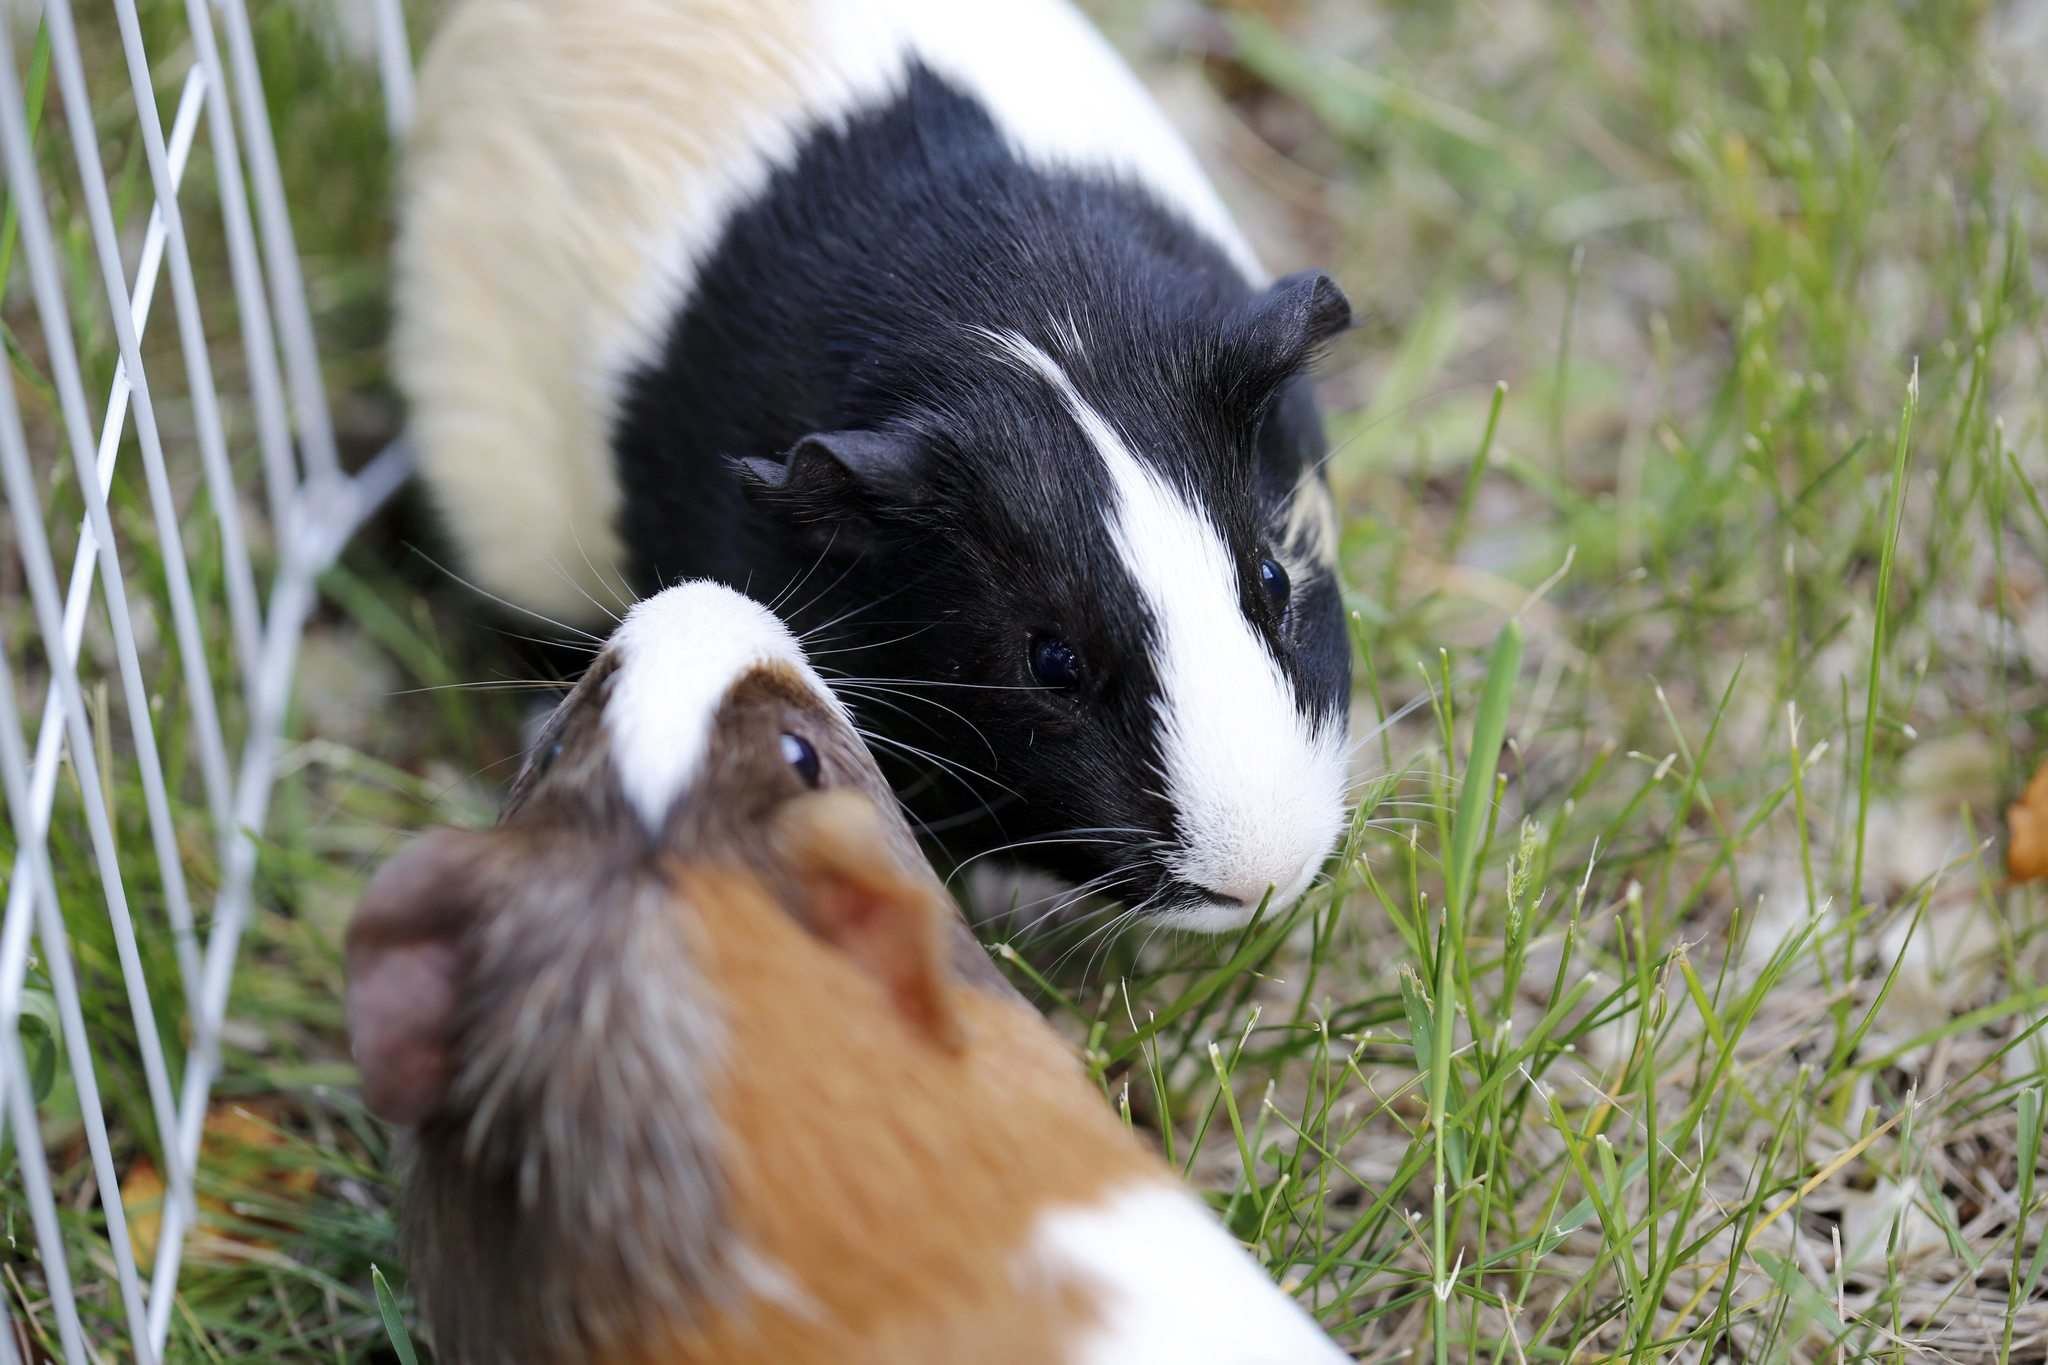 JUSTIN SAMANSKI-LANGILLE / WINNIPEG FREE PRESS</p><p>A pair of rescued guinea pigs munch on some fresh grass while outside Cindy and Jeff Hildebrand's house. </p>